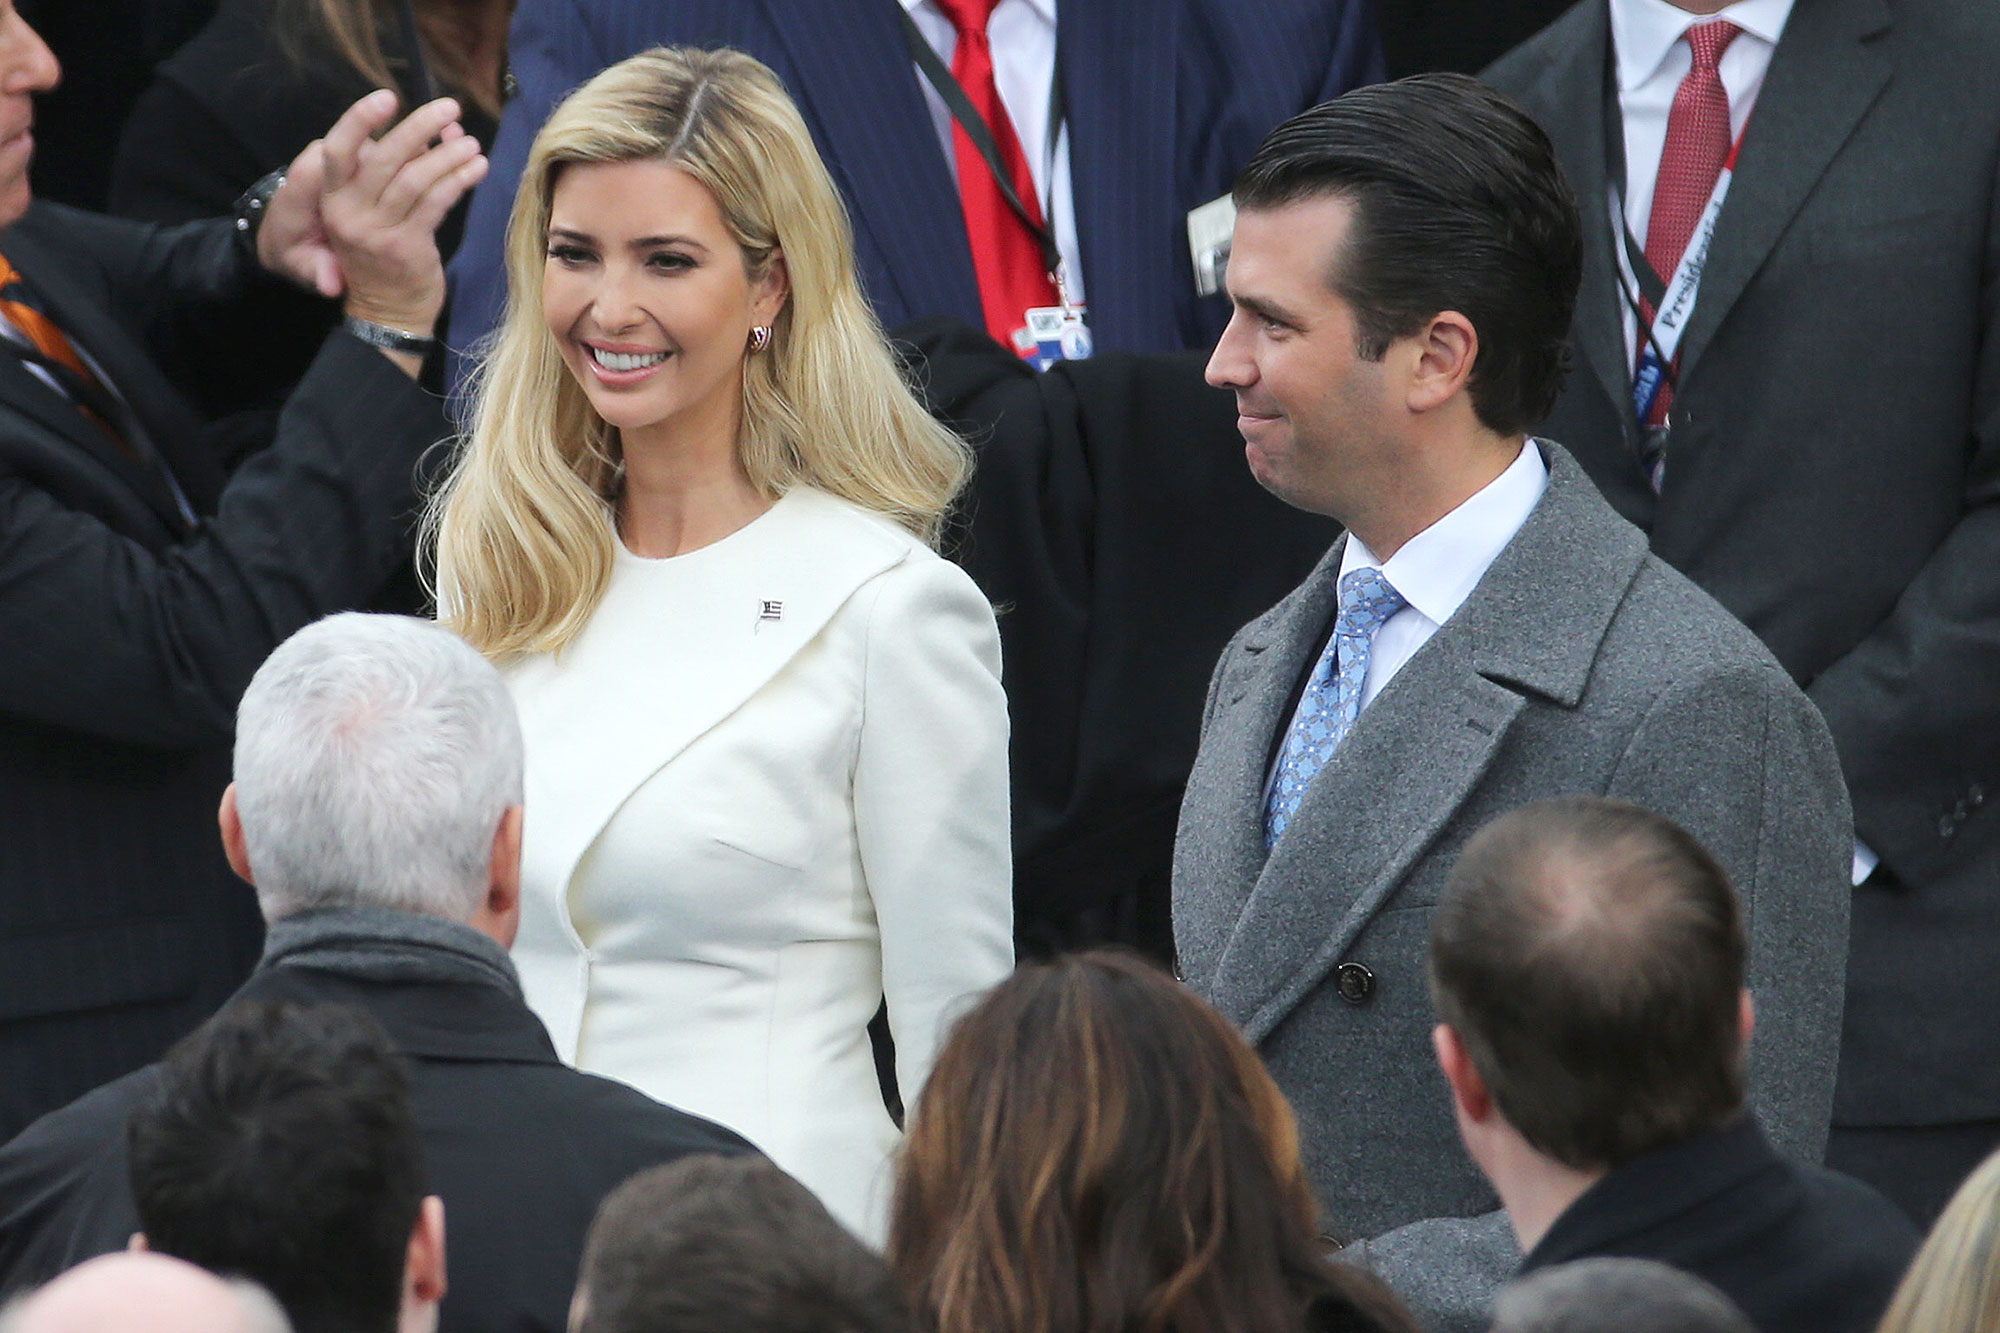 Ivanka Trump, daughter of U.S. President-elect Donald Trump, center left, and Donald Trump Jr., son of U.S. President-elect Donald Trump, center right, arrive for the 58th presidential inauguration in Washington, D.C., U.S., on Friday, Jan. 20, 2017. Trump will become the 45th president of the United States today, in a celebration of American unity for a country that is anything but unified. Photographer: Andrew Harrer/Bloomberg via Getty Images